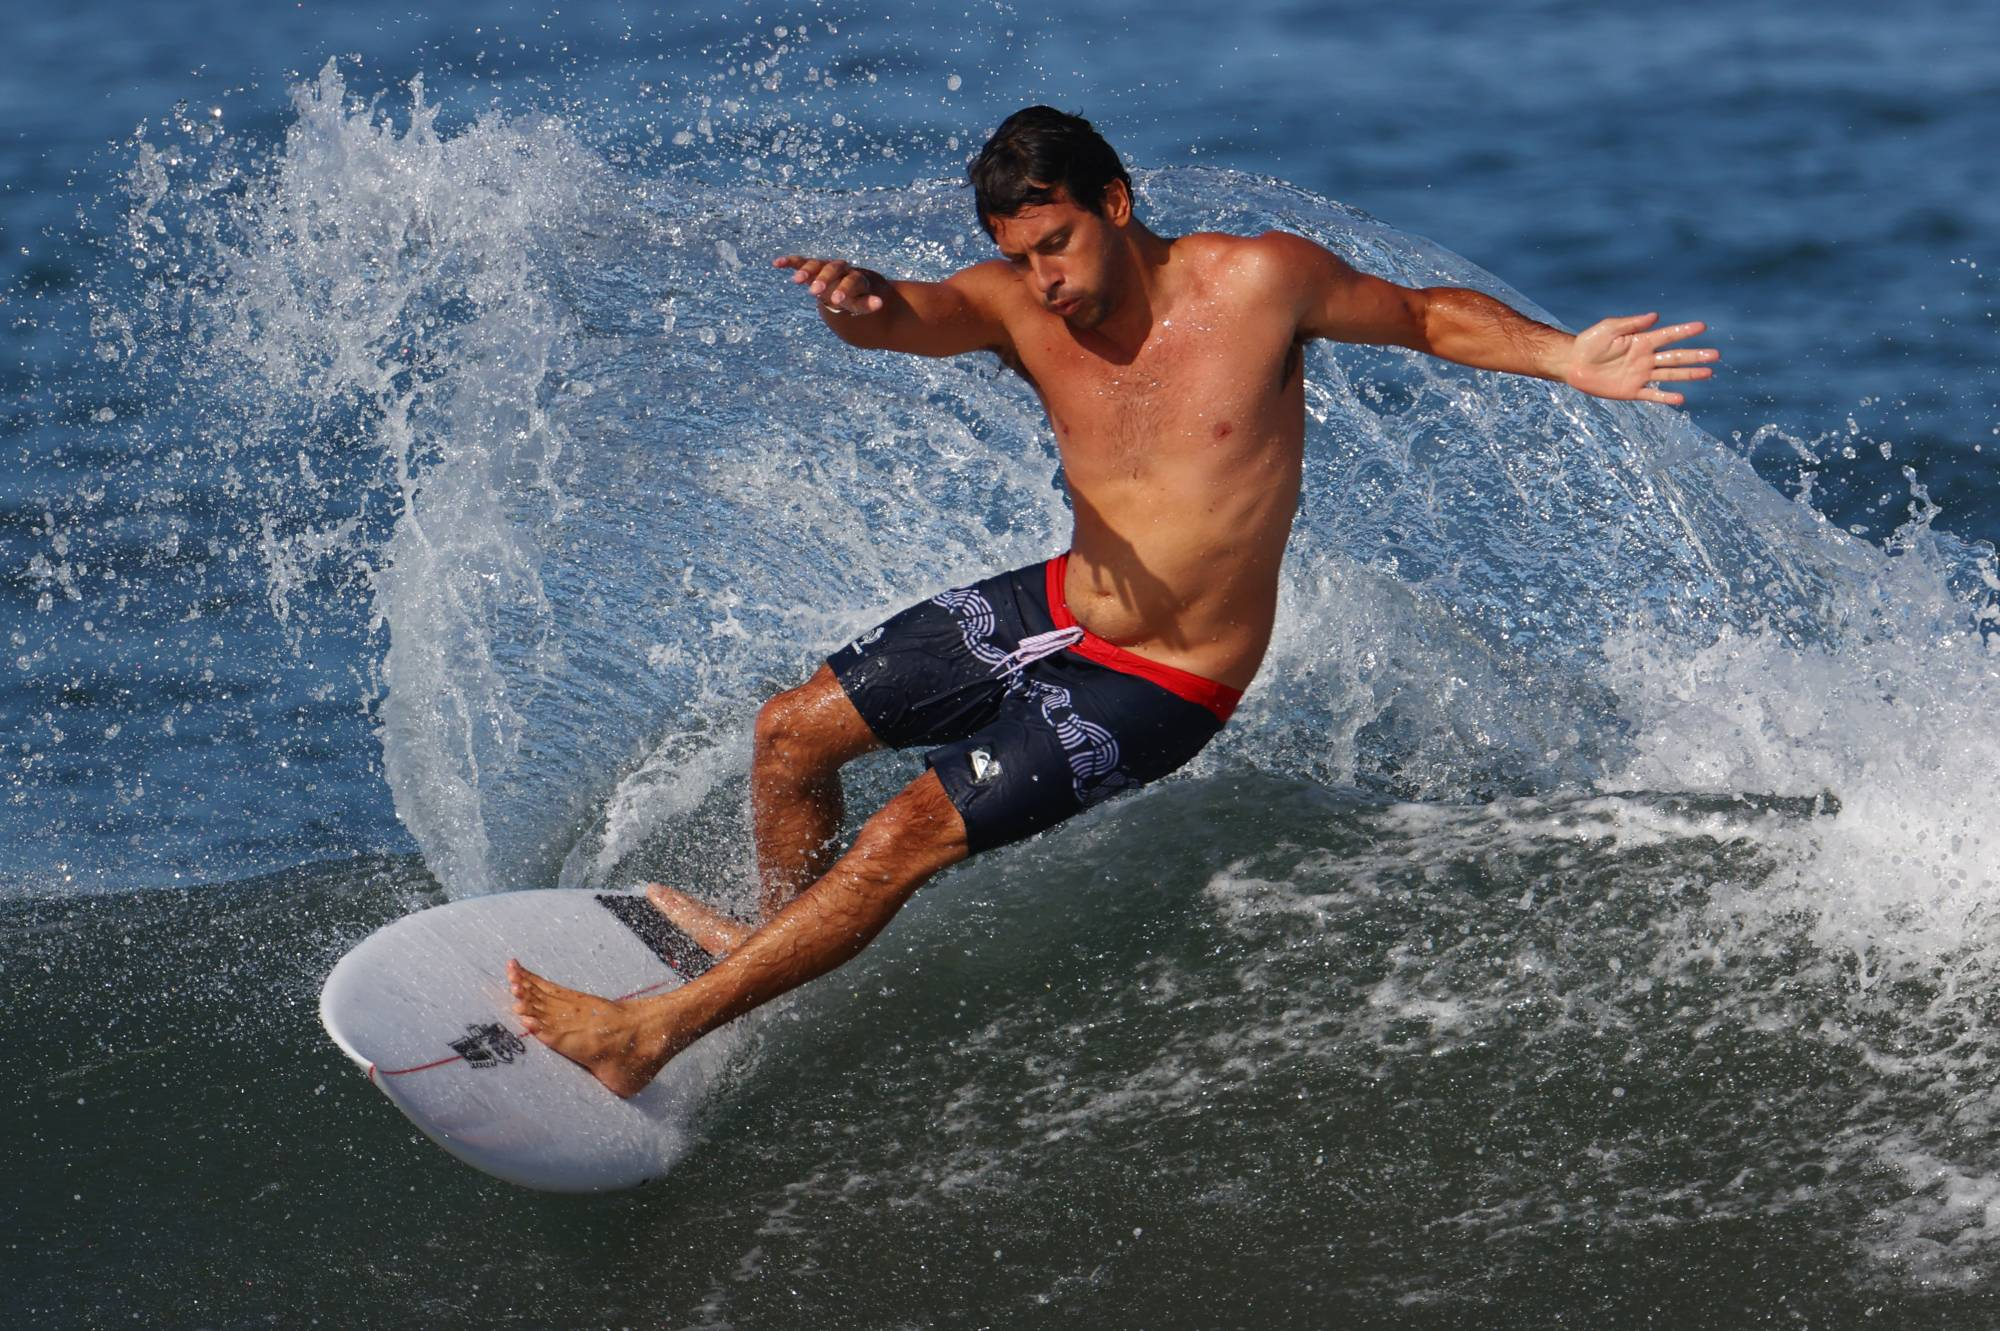 Michel Bourez of France in action during training on Friday at Tsurigasaki Surfing Beach in Chiba Prefecture.   | REUTERS